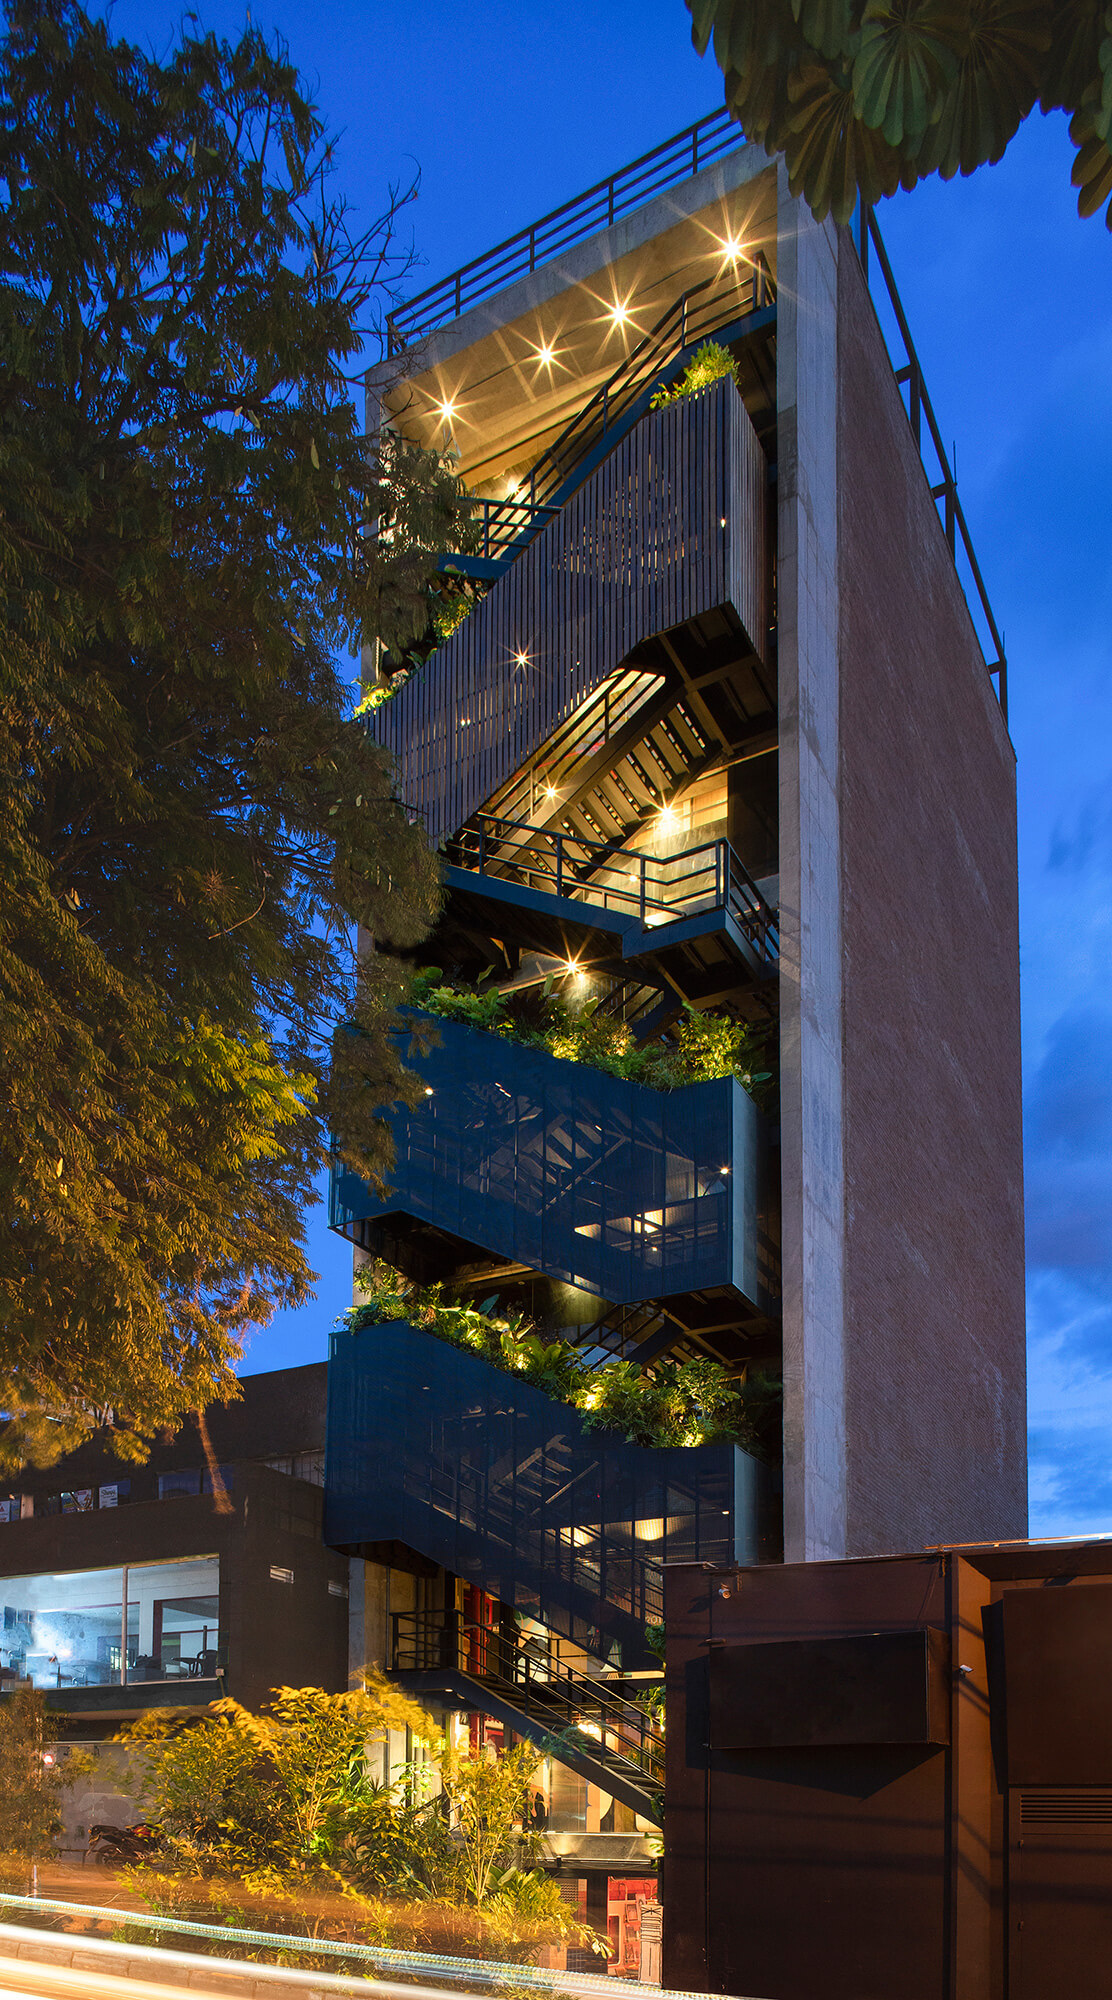 Industrial-looking exteriors of The Somos | A5 Arquitectura |  Medellín, Colombia | STIRworld